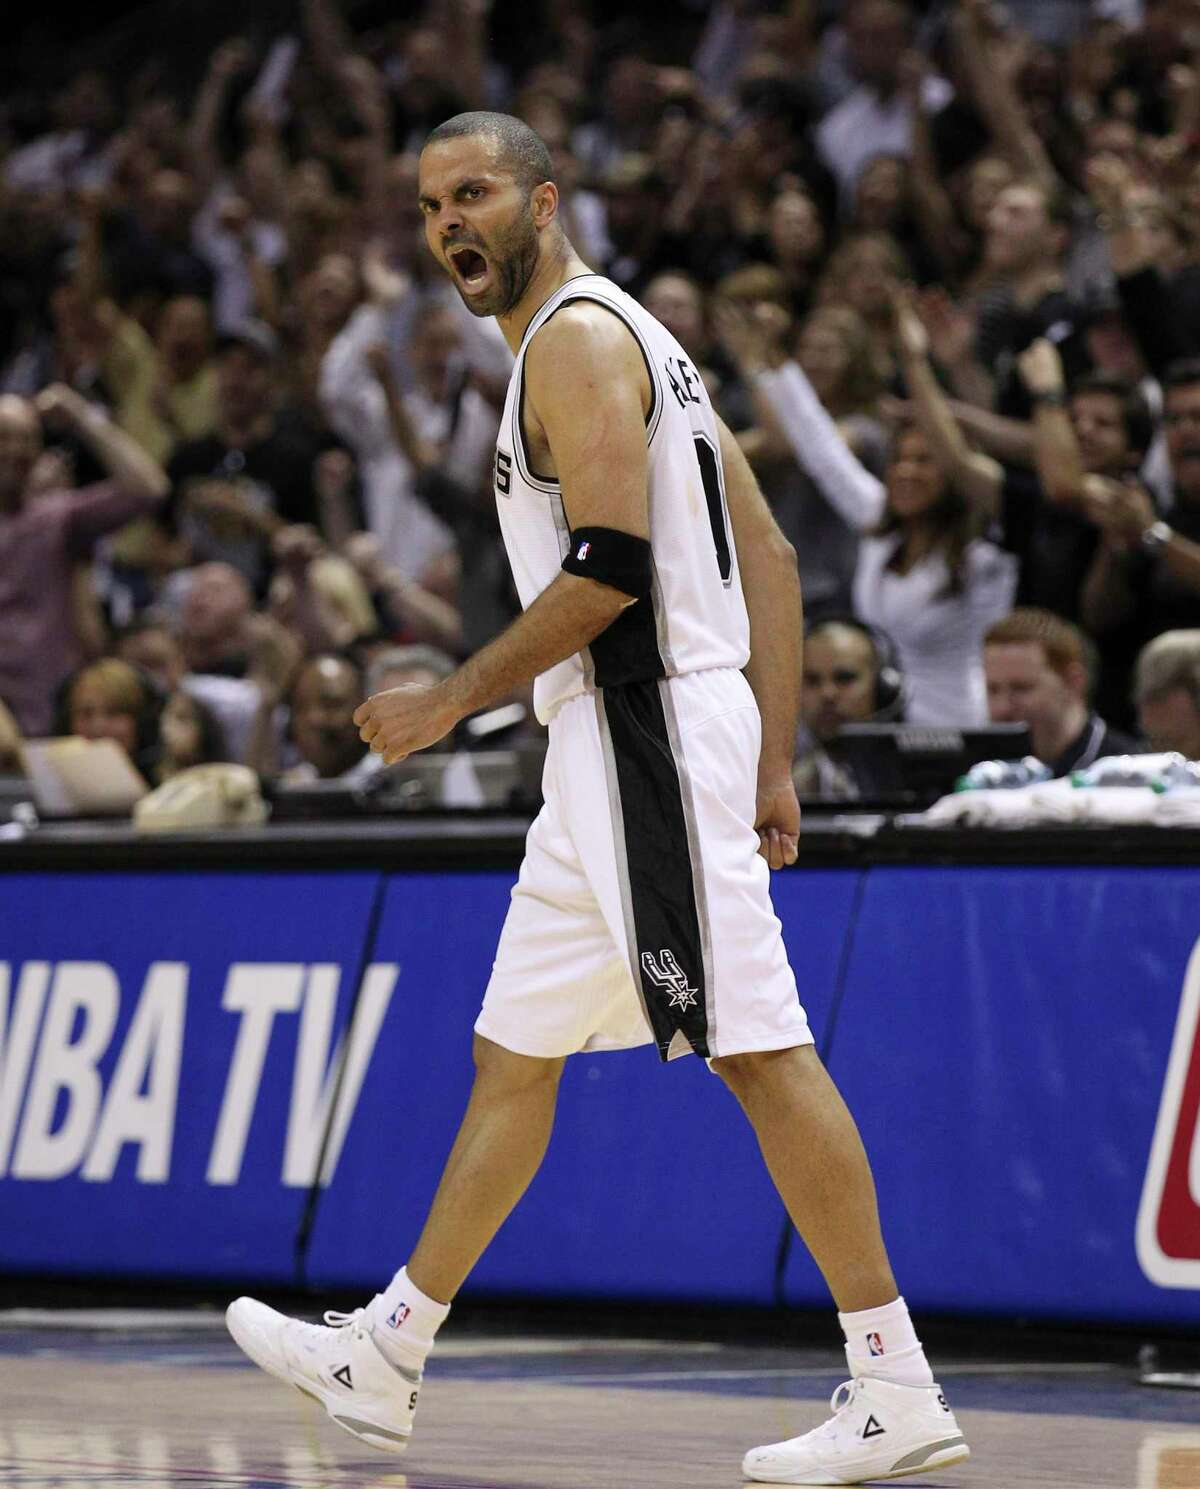 Spurs' Tony Parker (09) reacts after hitting a jump shot against the Dallas Mavericks in the second half of Game 5 of the first round of the Western Conference playoffs at the AT&T Center on Wednesday, Apr. 30, 2014. Spurs defeated the Mavericks, 109-103. (Kin Man Hui/San Antonio Express-News)